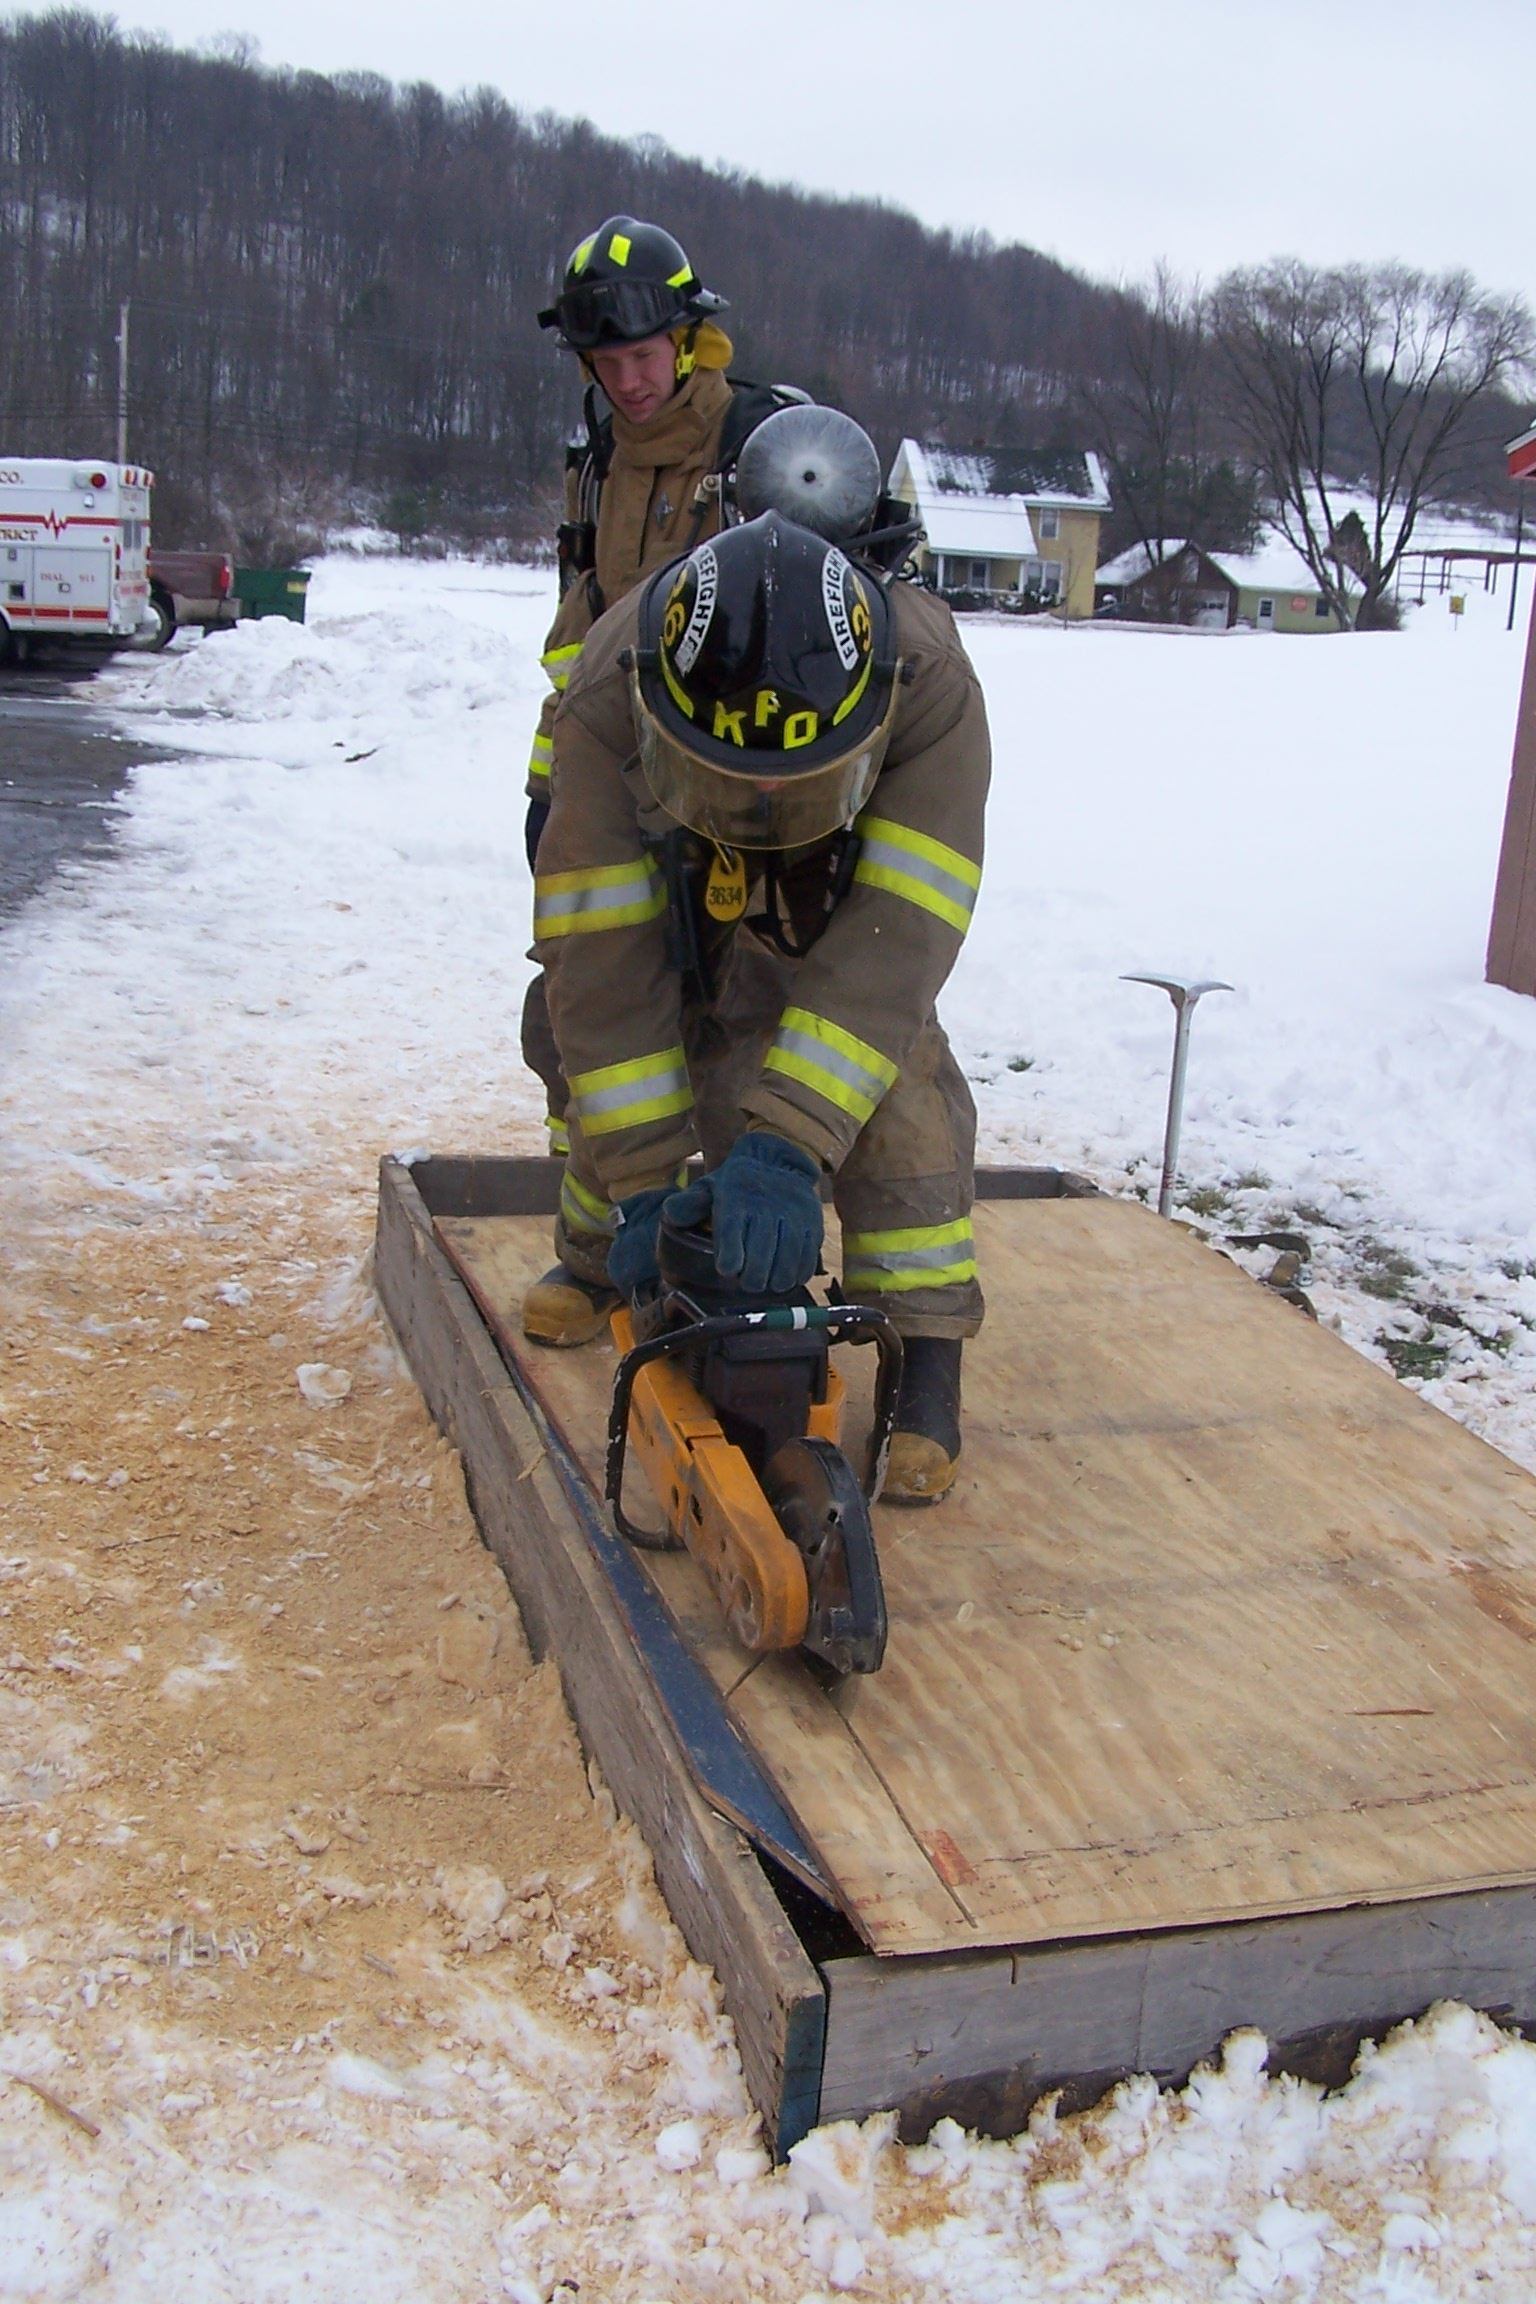 A firefighter demonstrates how to cut into a roof with a powersaw while another firefighter observes.